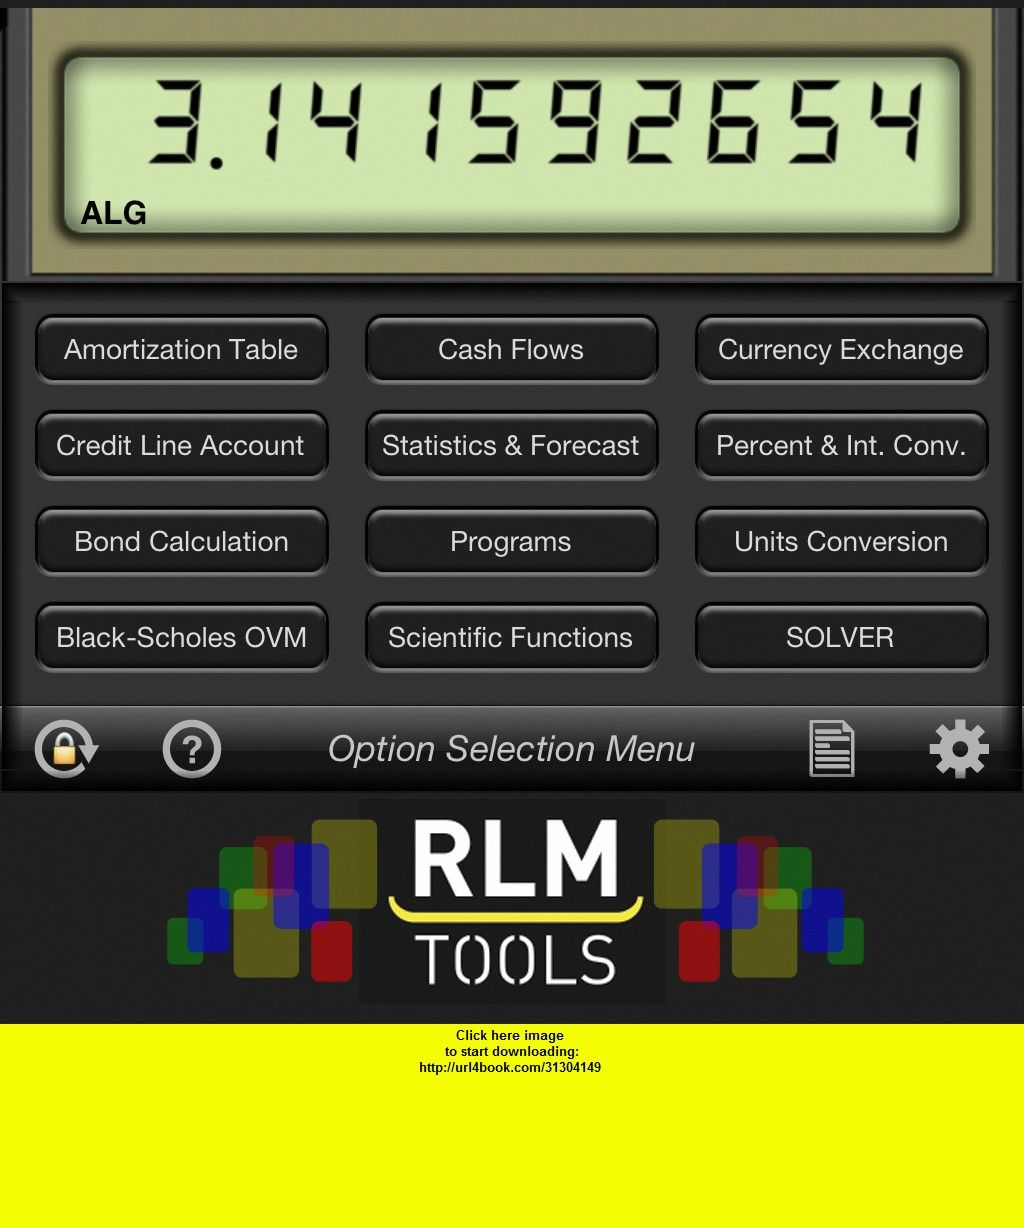 Finance Center, iphone, ipad, ipod touch, itouch, itunes, appstore, torrent, downloads, rapidshare, megaupload, fileserve